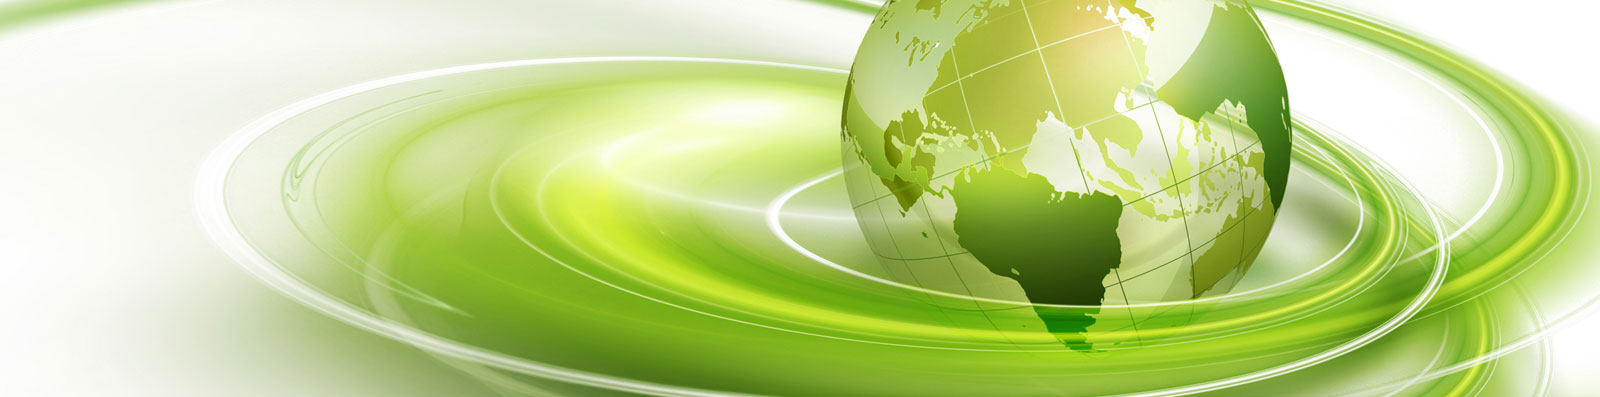 Indoor Environmental Quality and Energy Saving